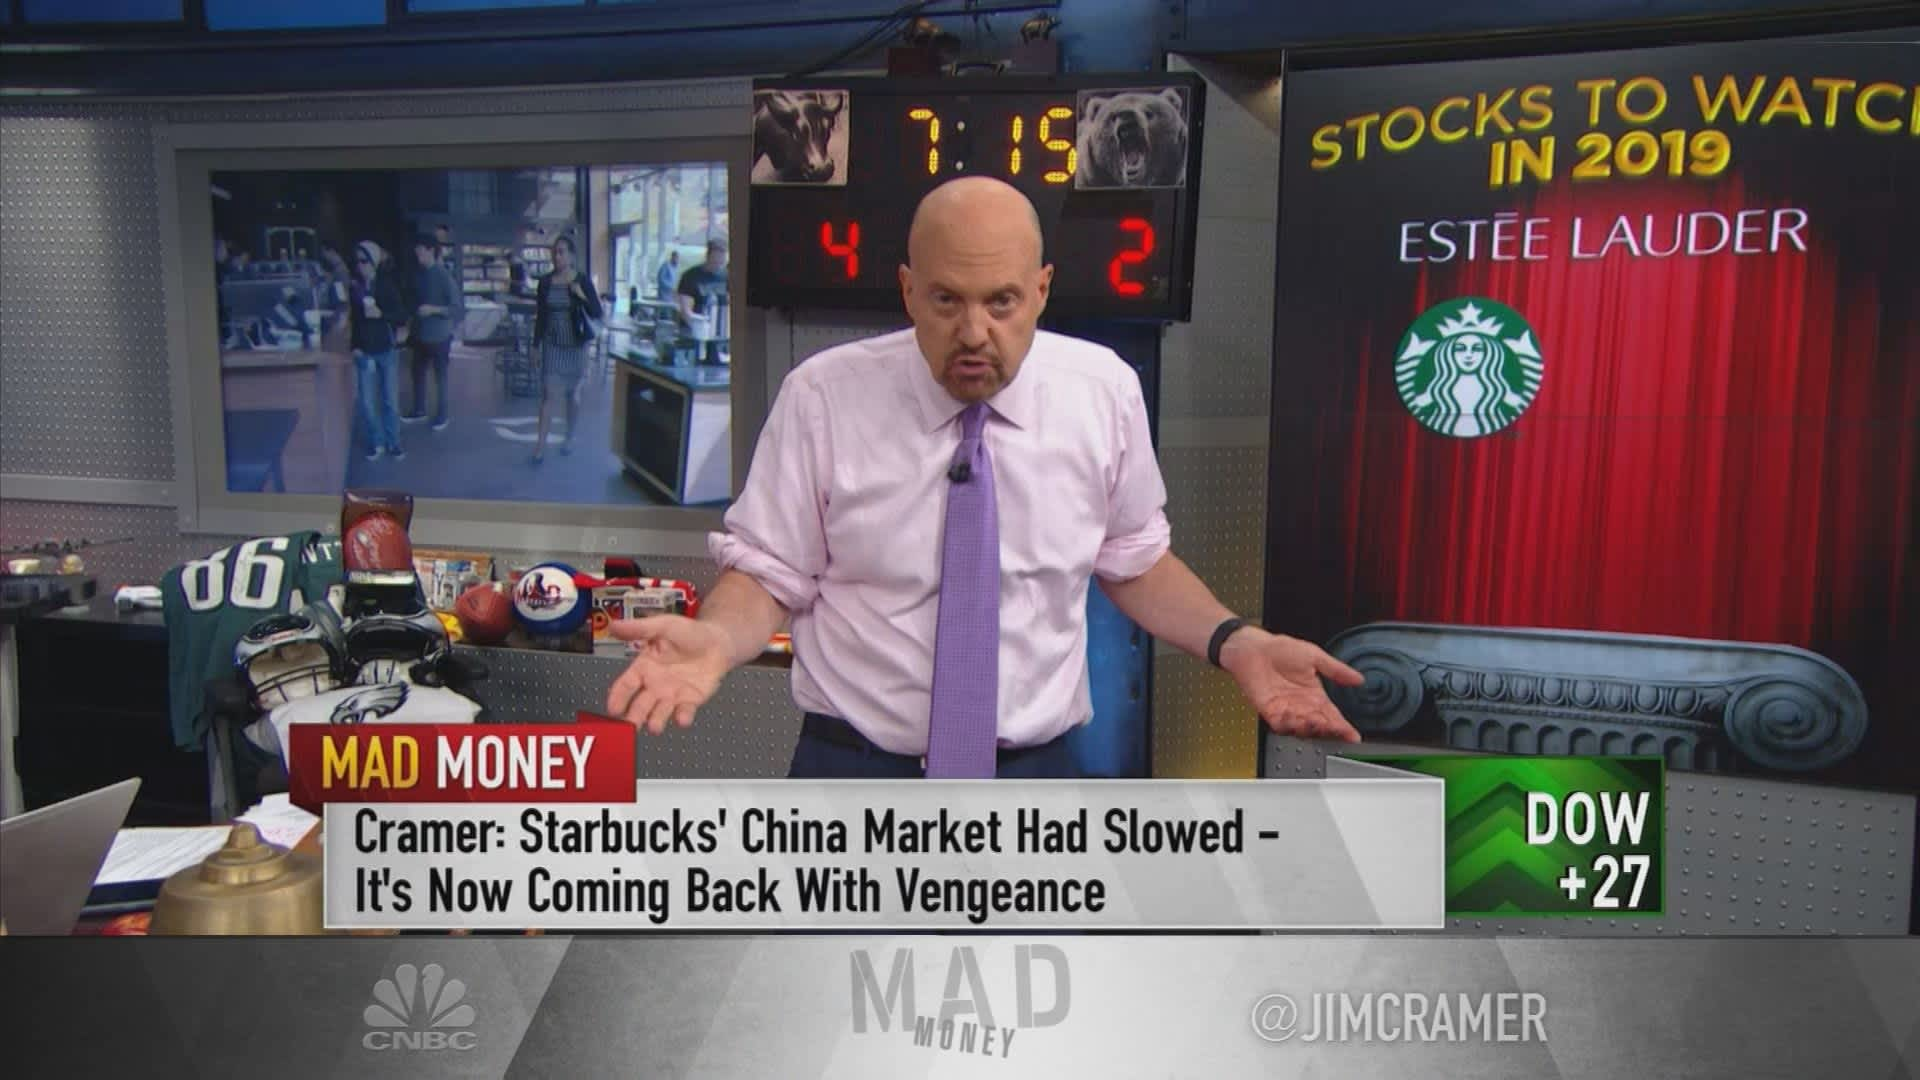 Jim Cramer reviews 6 stocks that 'have been anointed by Wall Street' amid an economic slowdown